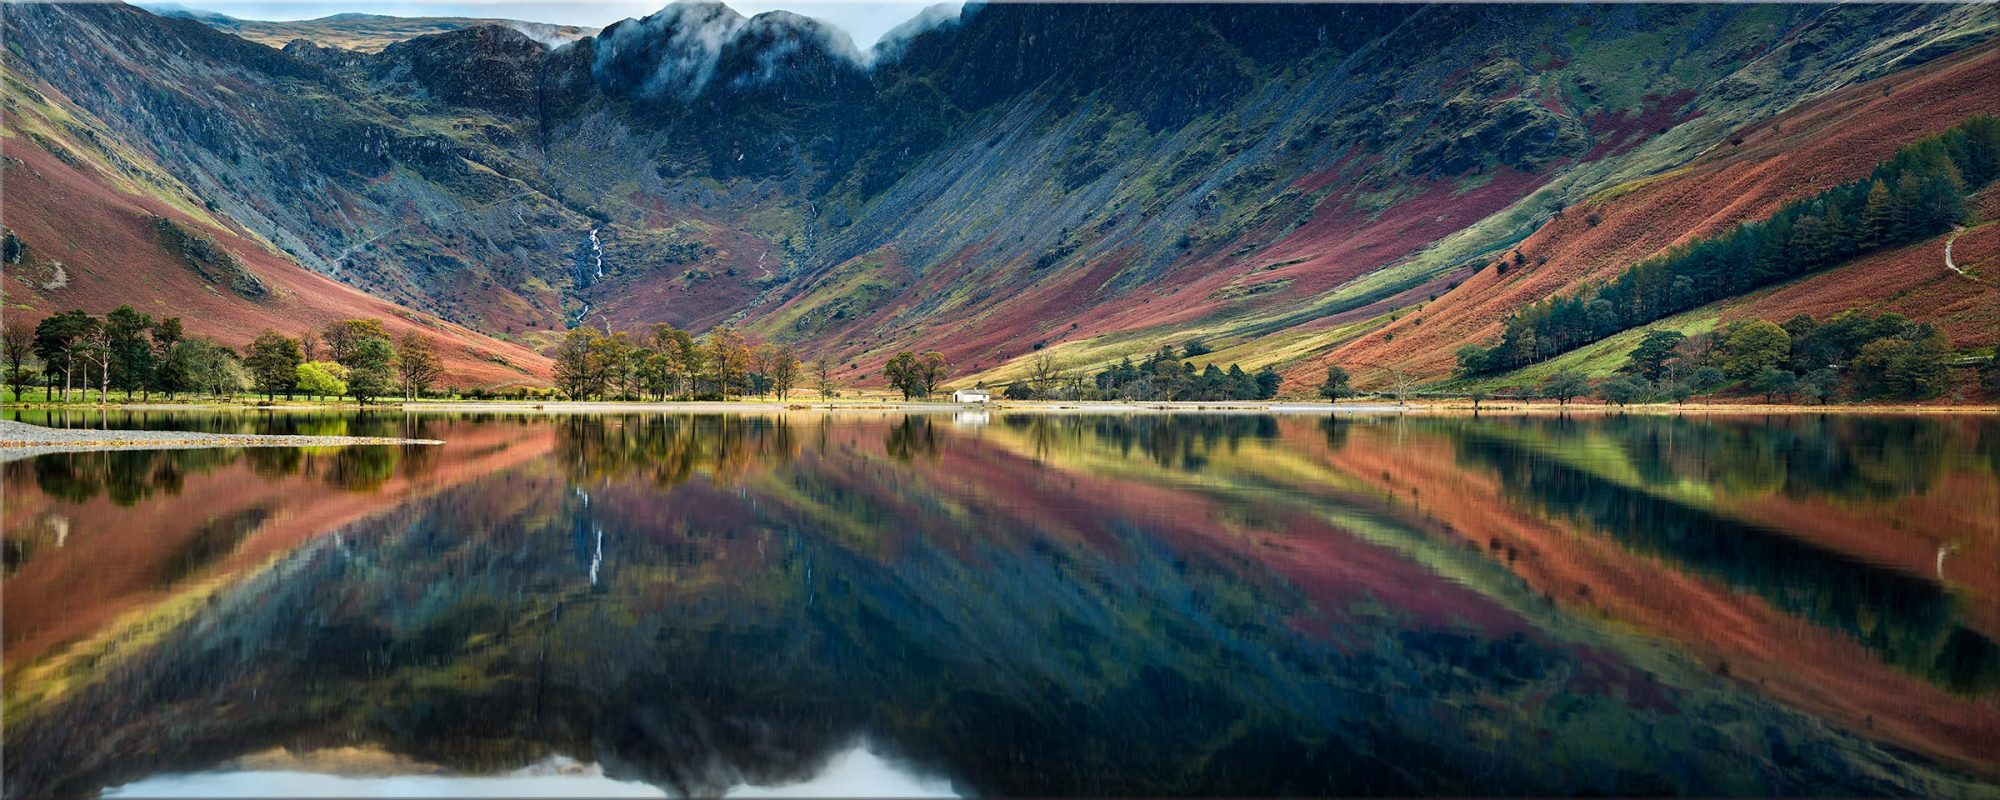 Buttermere Reflections - Canvas Print